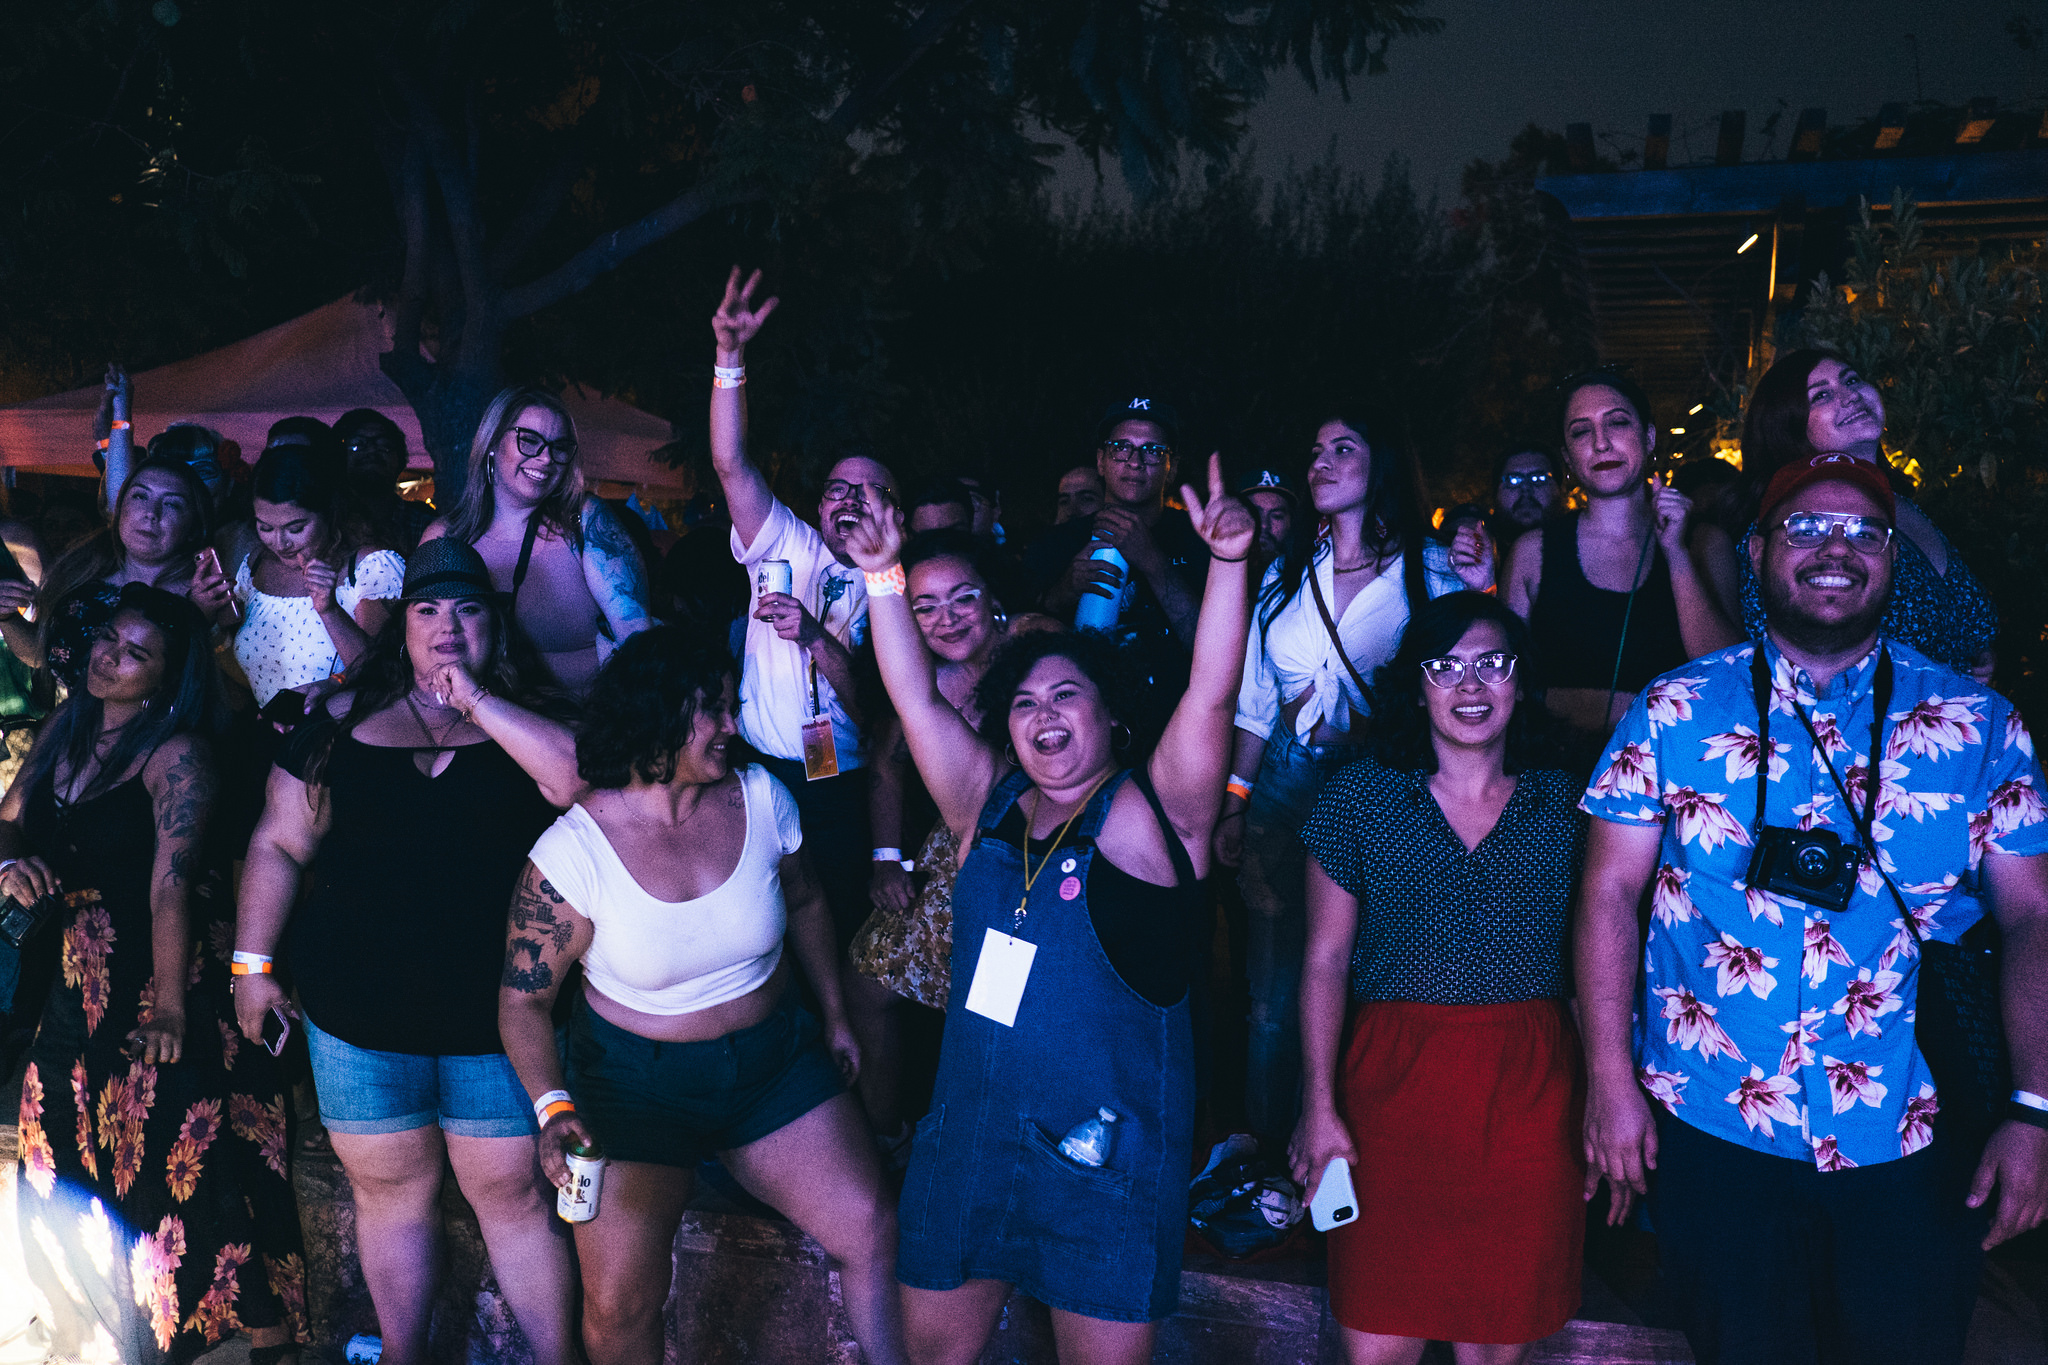 Crowd dancing at the Pond Stage of Sonido Clash Music Fest 2018. Photo by Franz Barreto.